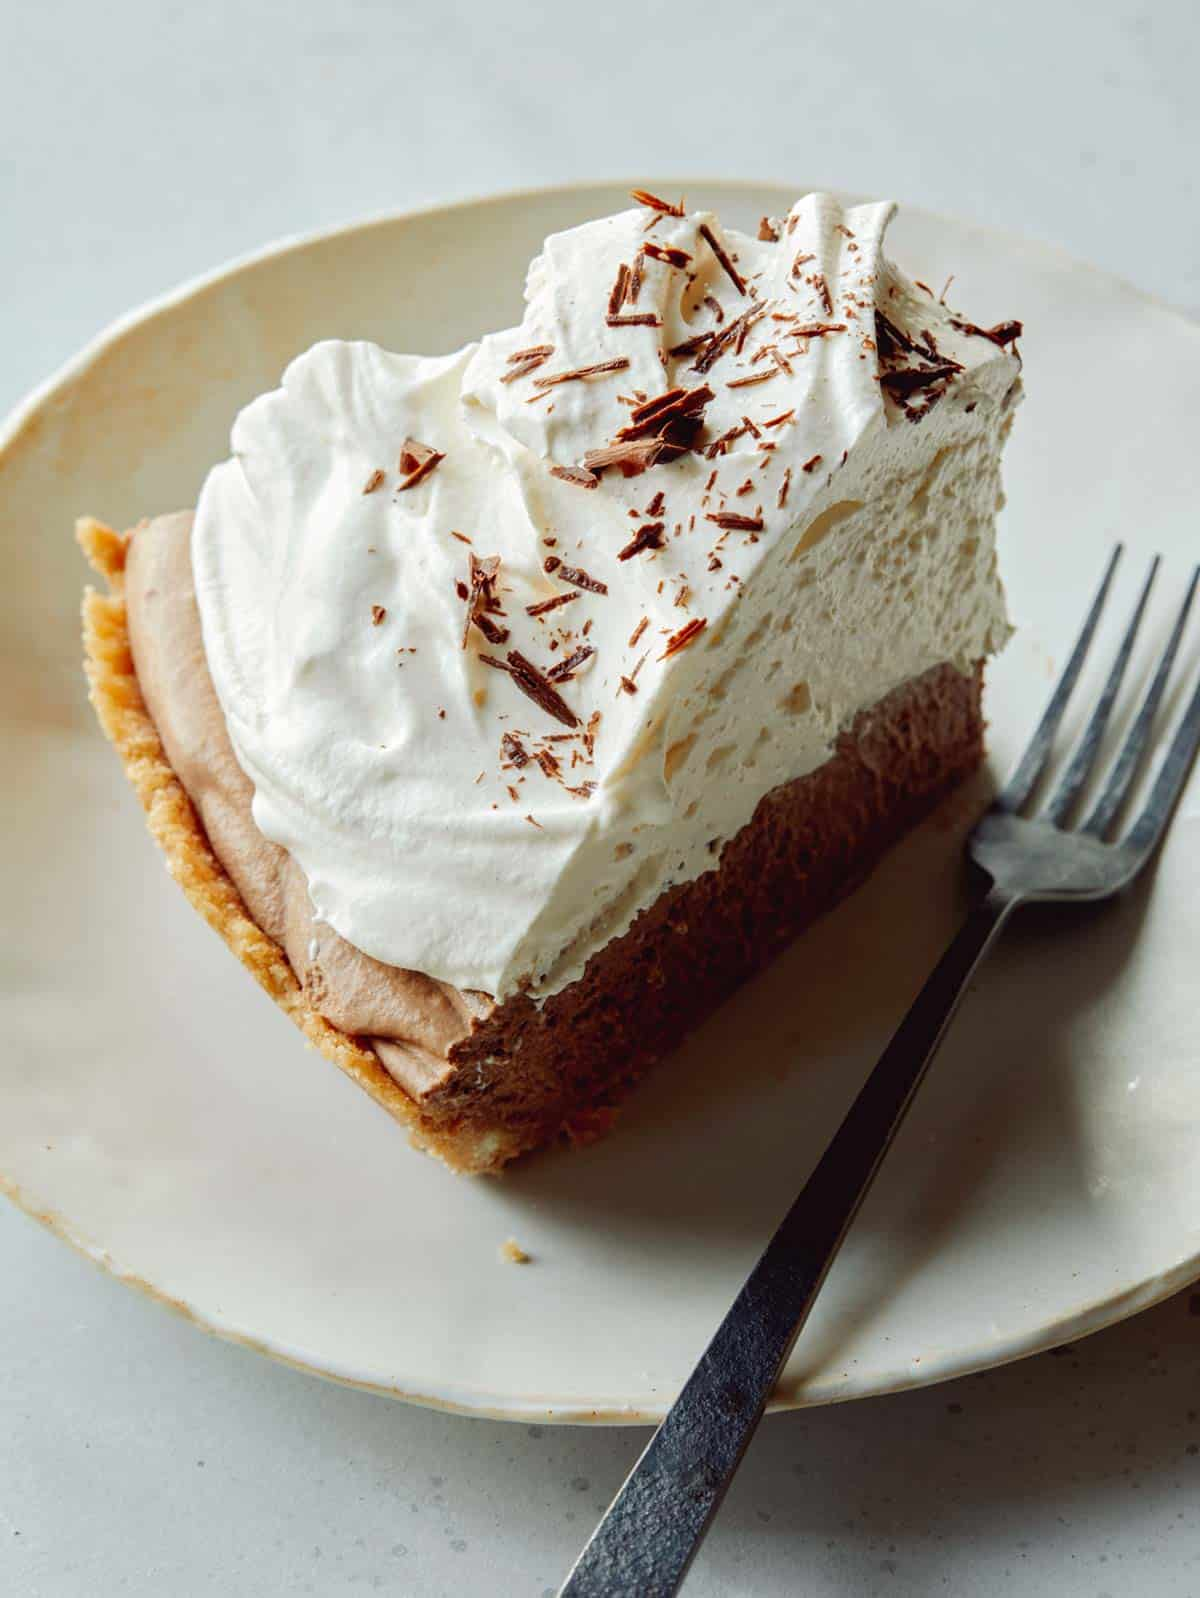 A slice of French silk tart on a plate with a fork next to it.